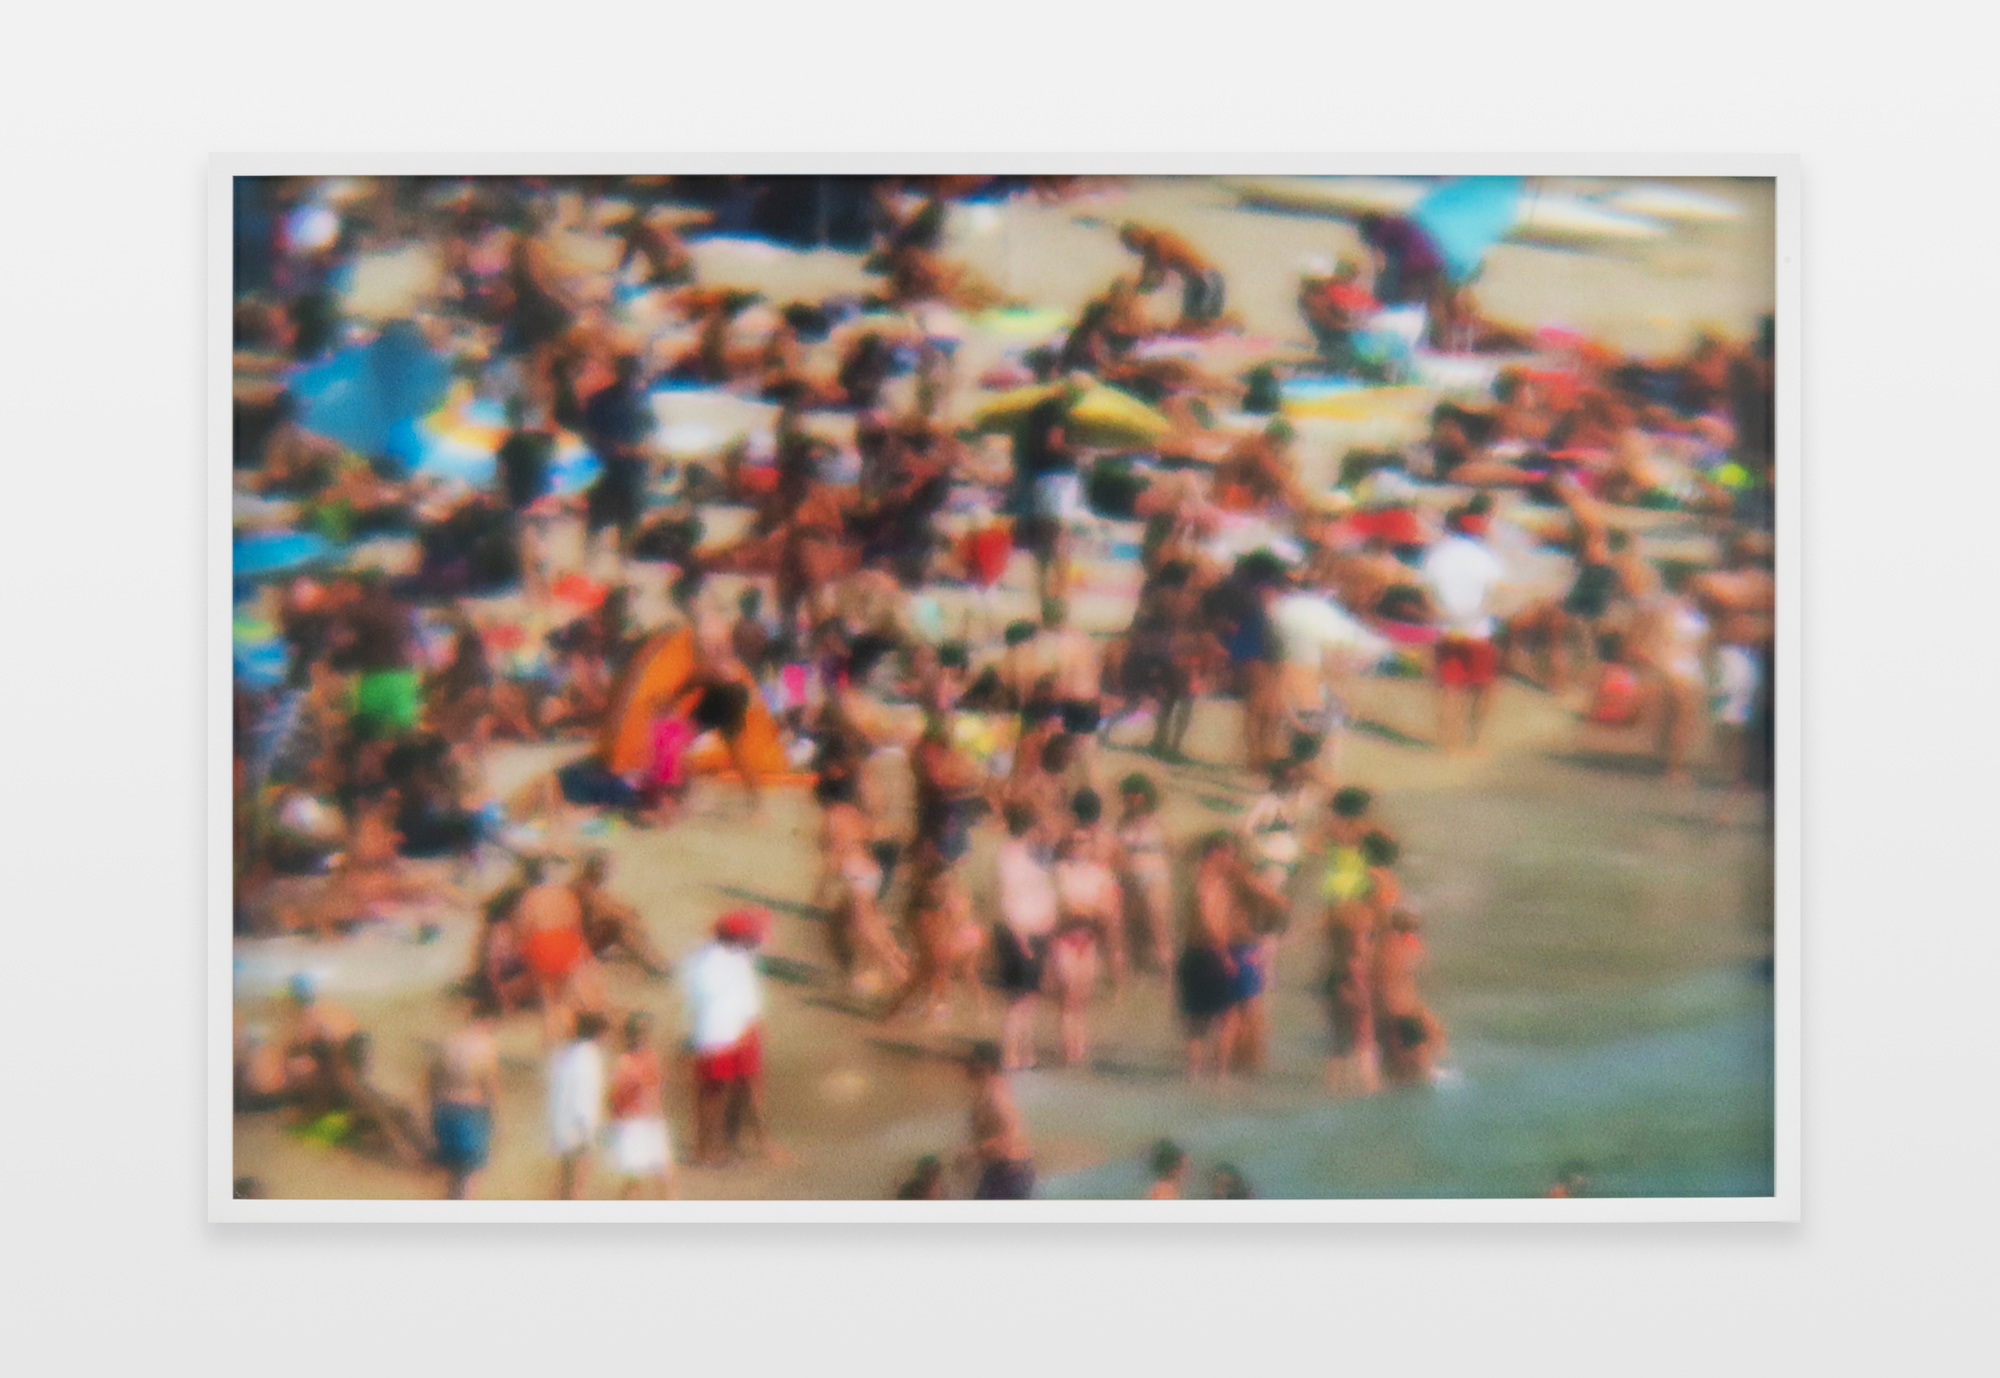 Barbara Ess, Beach (from Balcony), 2016-2019, archival pigment print, 26.63h x 39.88w in.